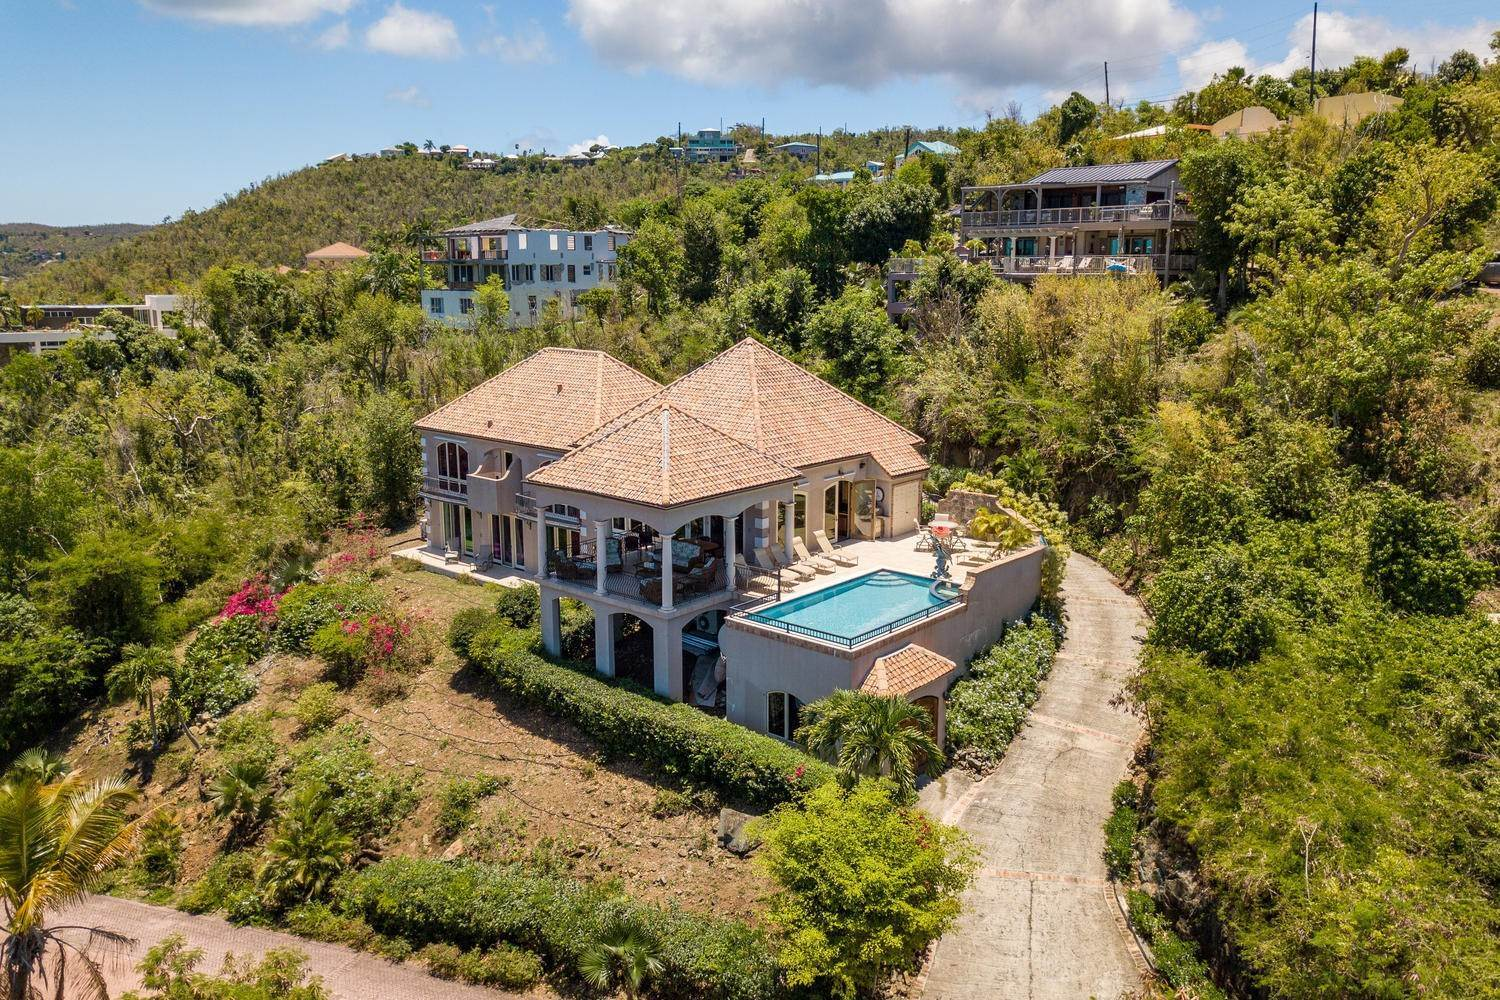 6. Single Family Home for Sale at 3B-53 Sans Soucci & Guinea Gut Cruz Bay St John, Virgin Islands,00830 United States Virgin Islands